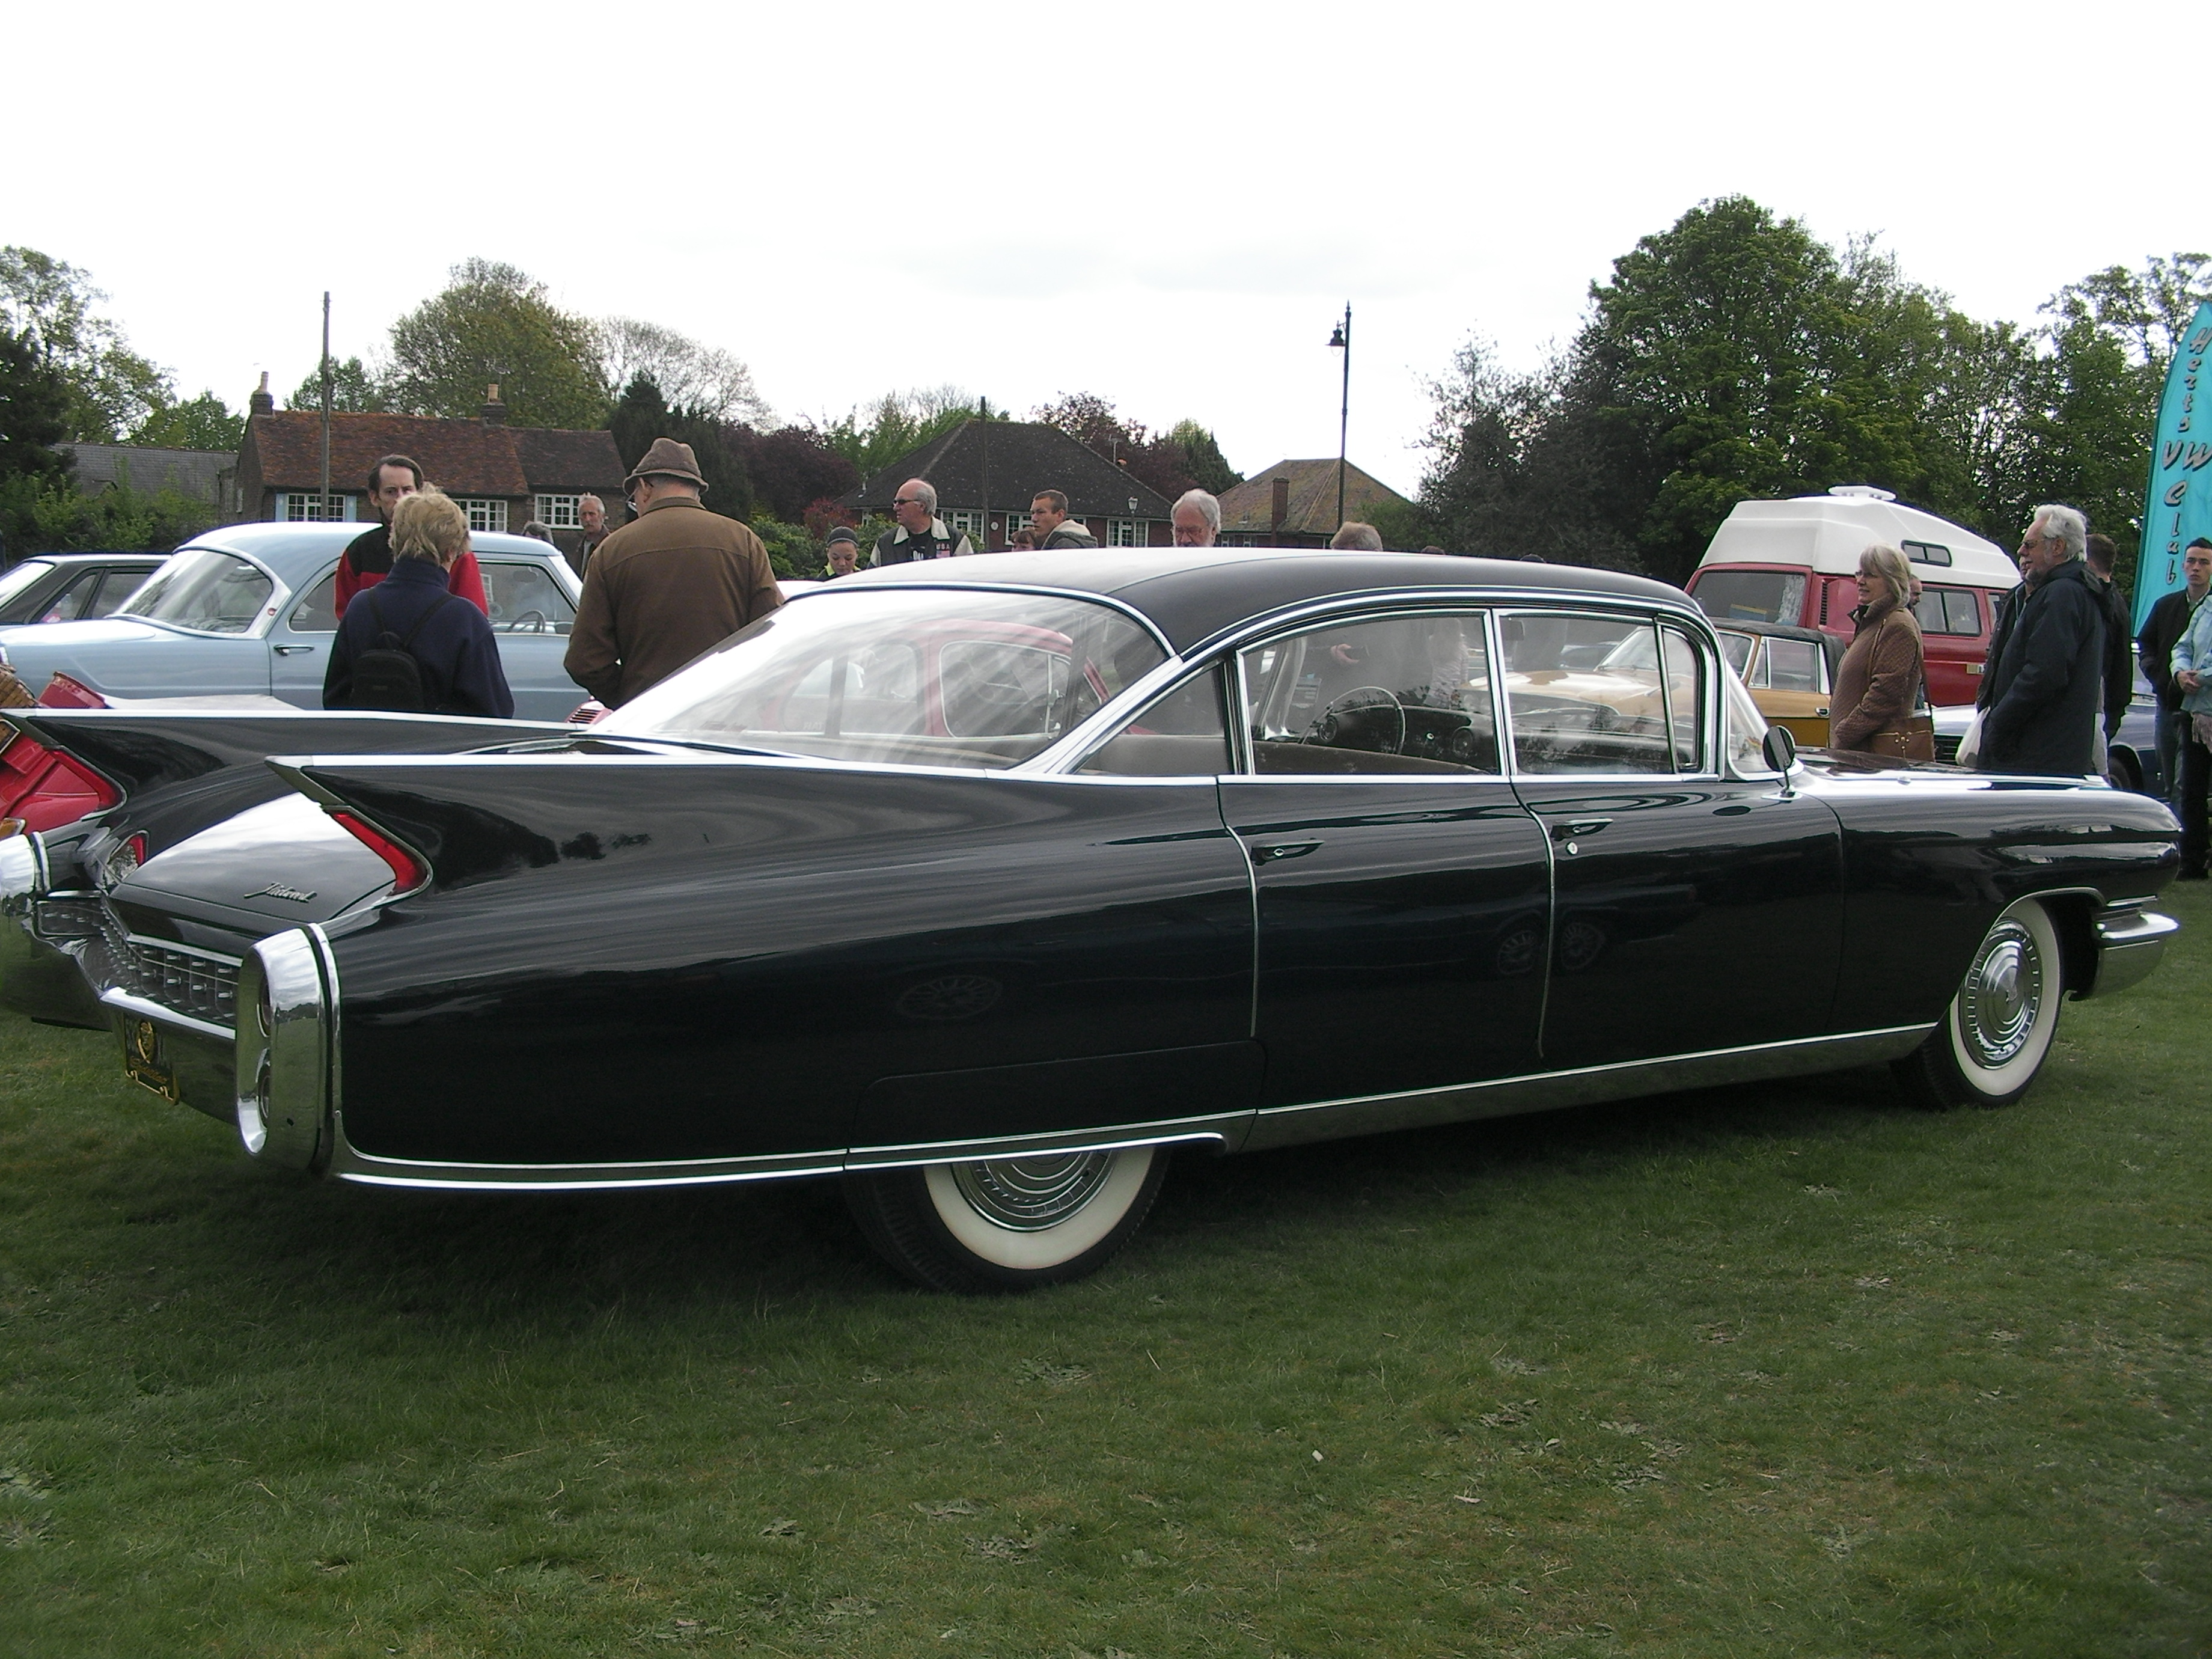 coupe rare s elegance car cadillac with sale de displacement pin fleetwood very a the engine for brougham thomas